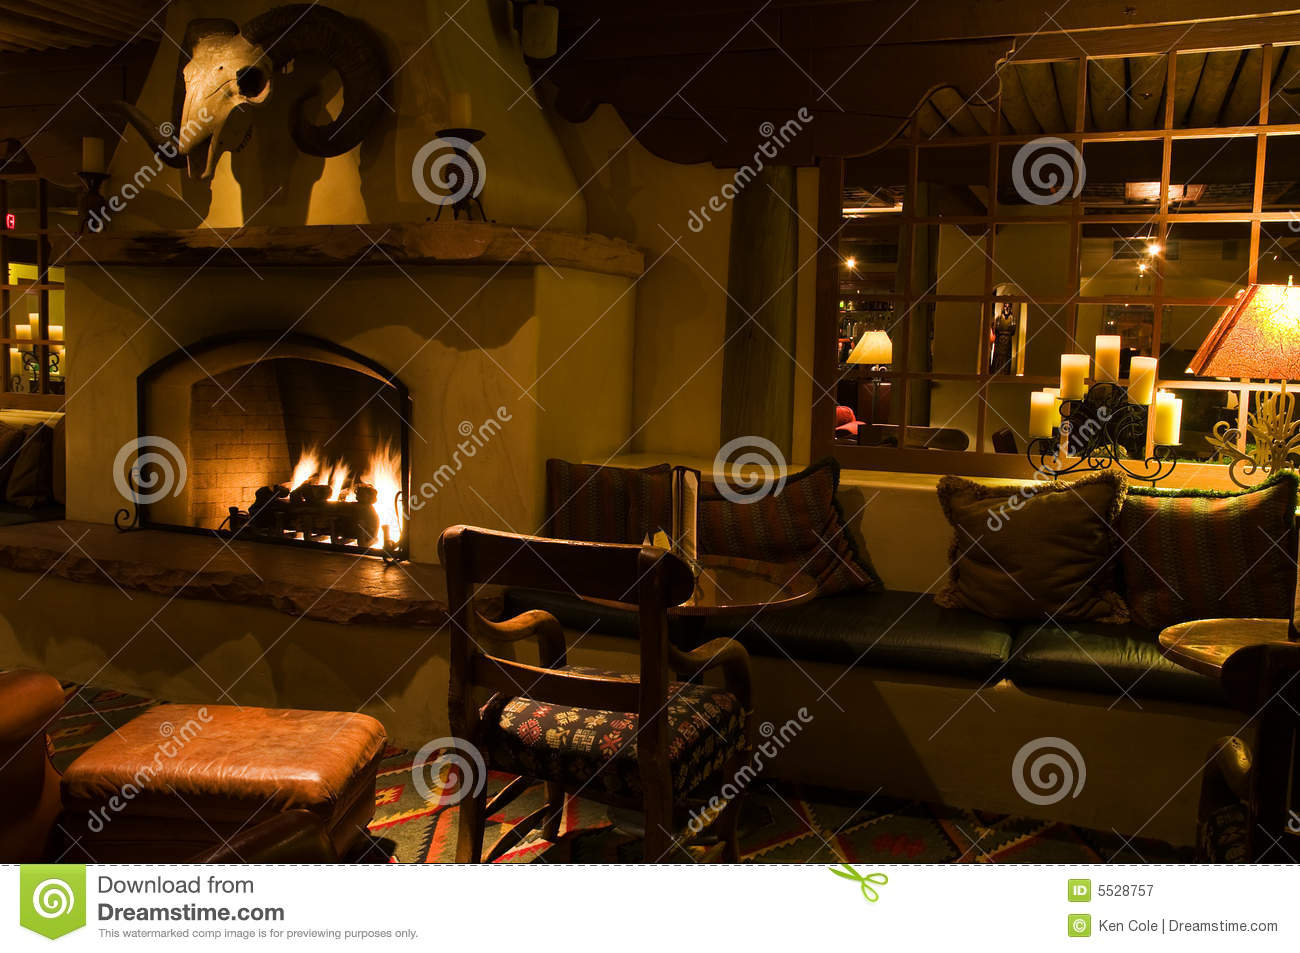 Dark Lounge And Cozy Fireplace Royalty Free Stock